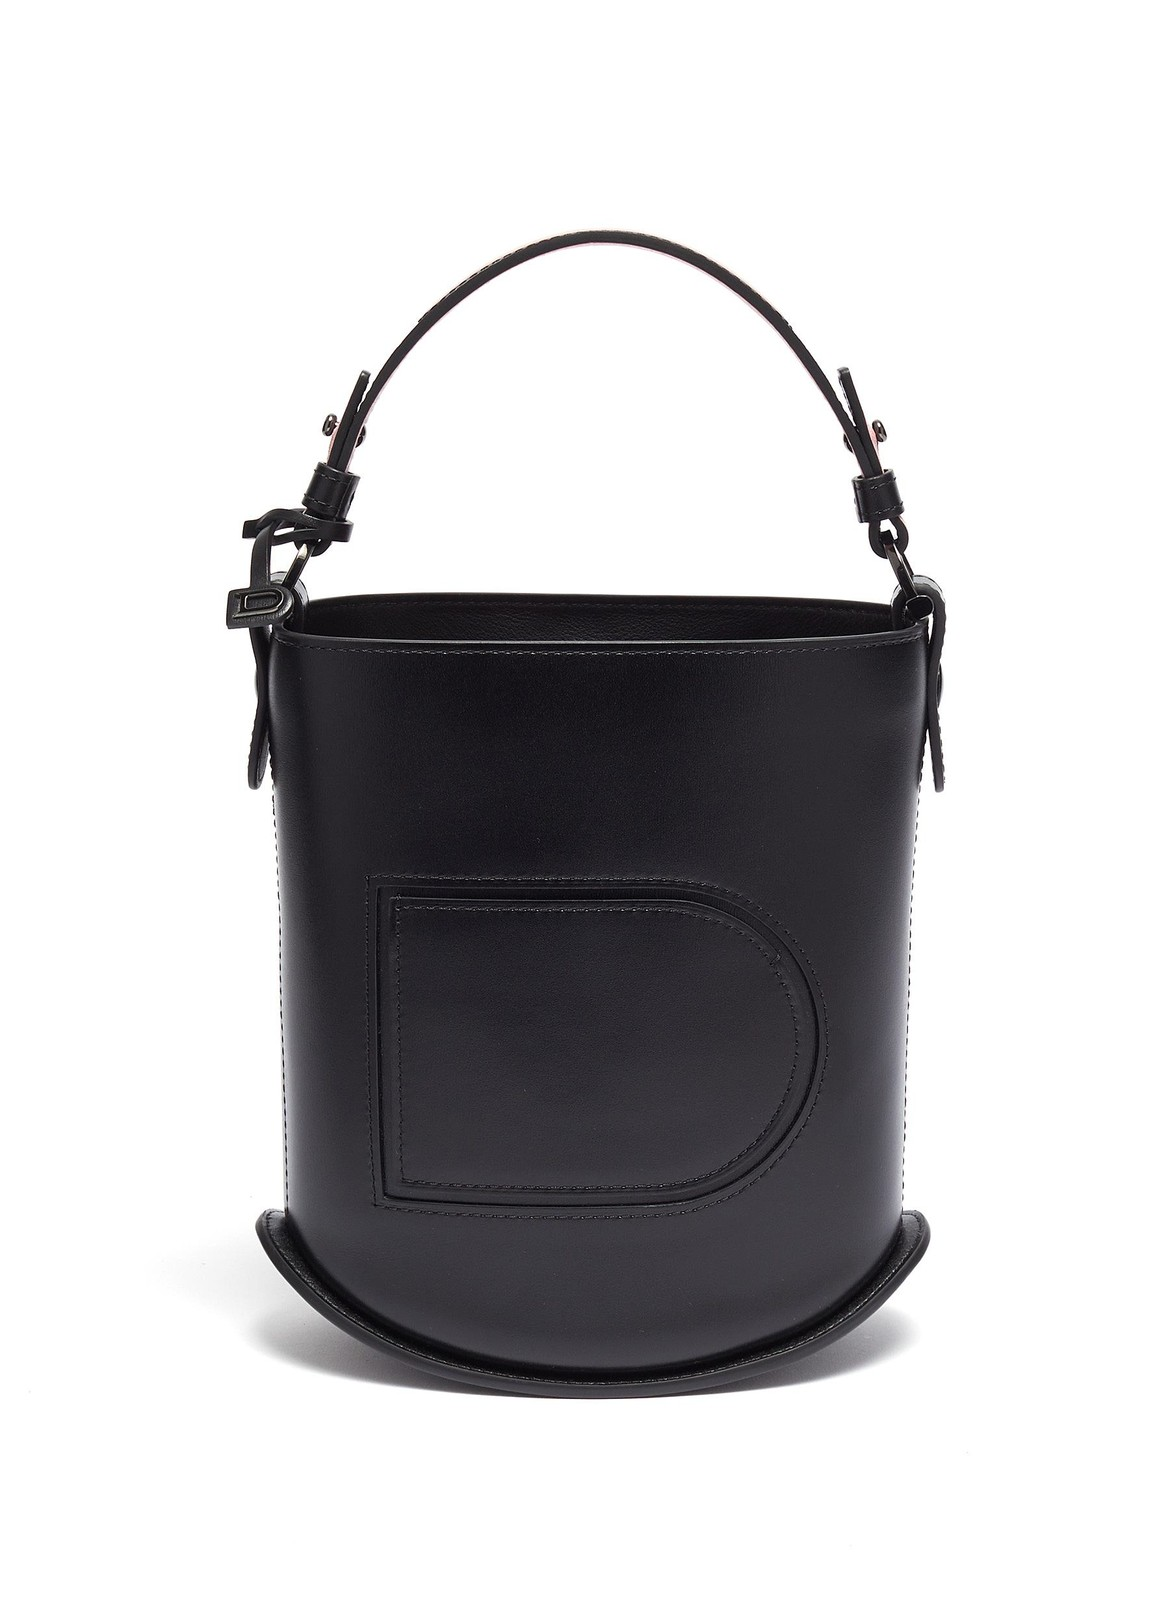 DELVAUX 'PIN MINI' LEATHER BUCKET BAGHK$19,600 from lane crawford